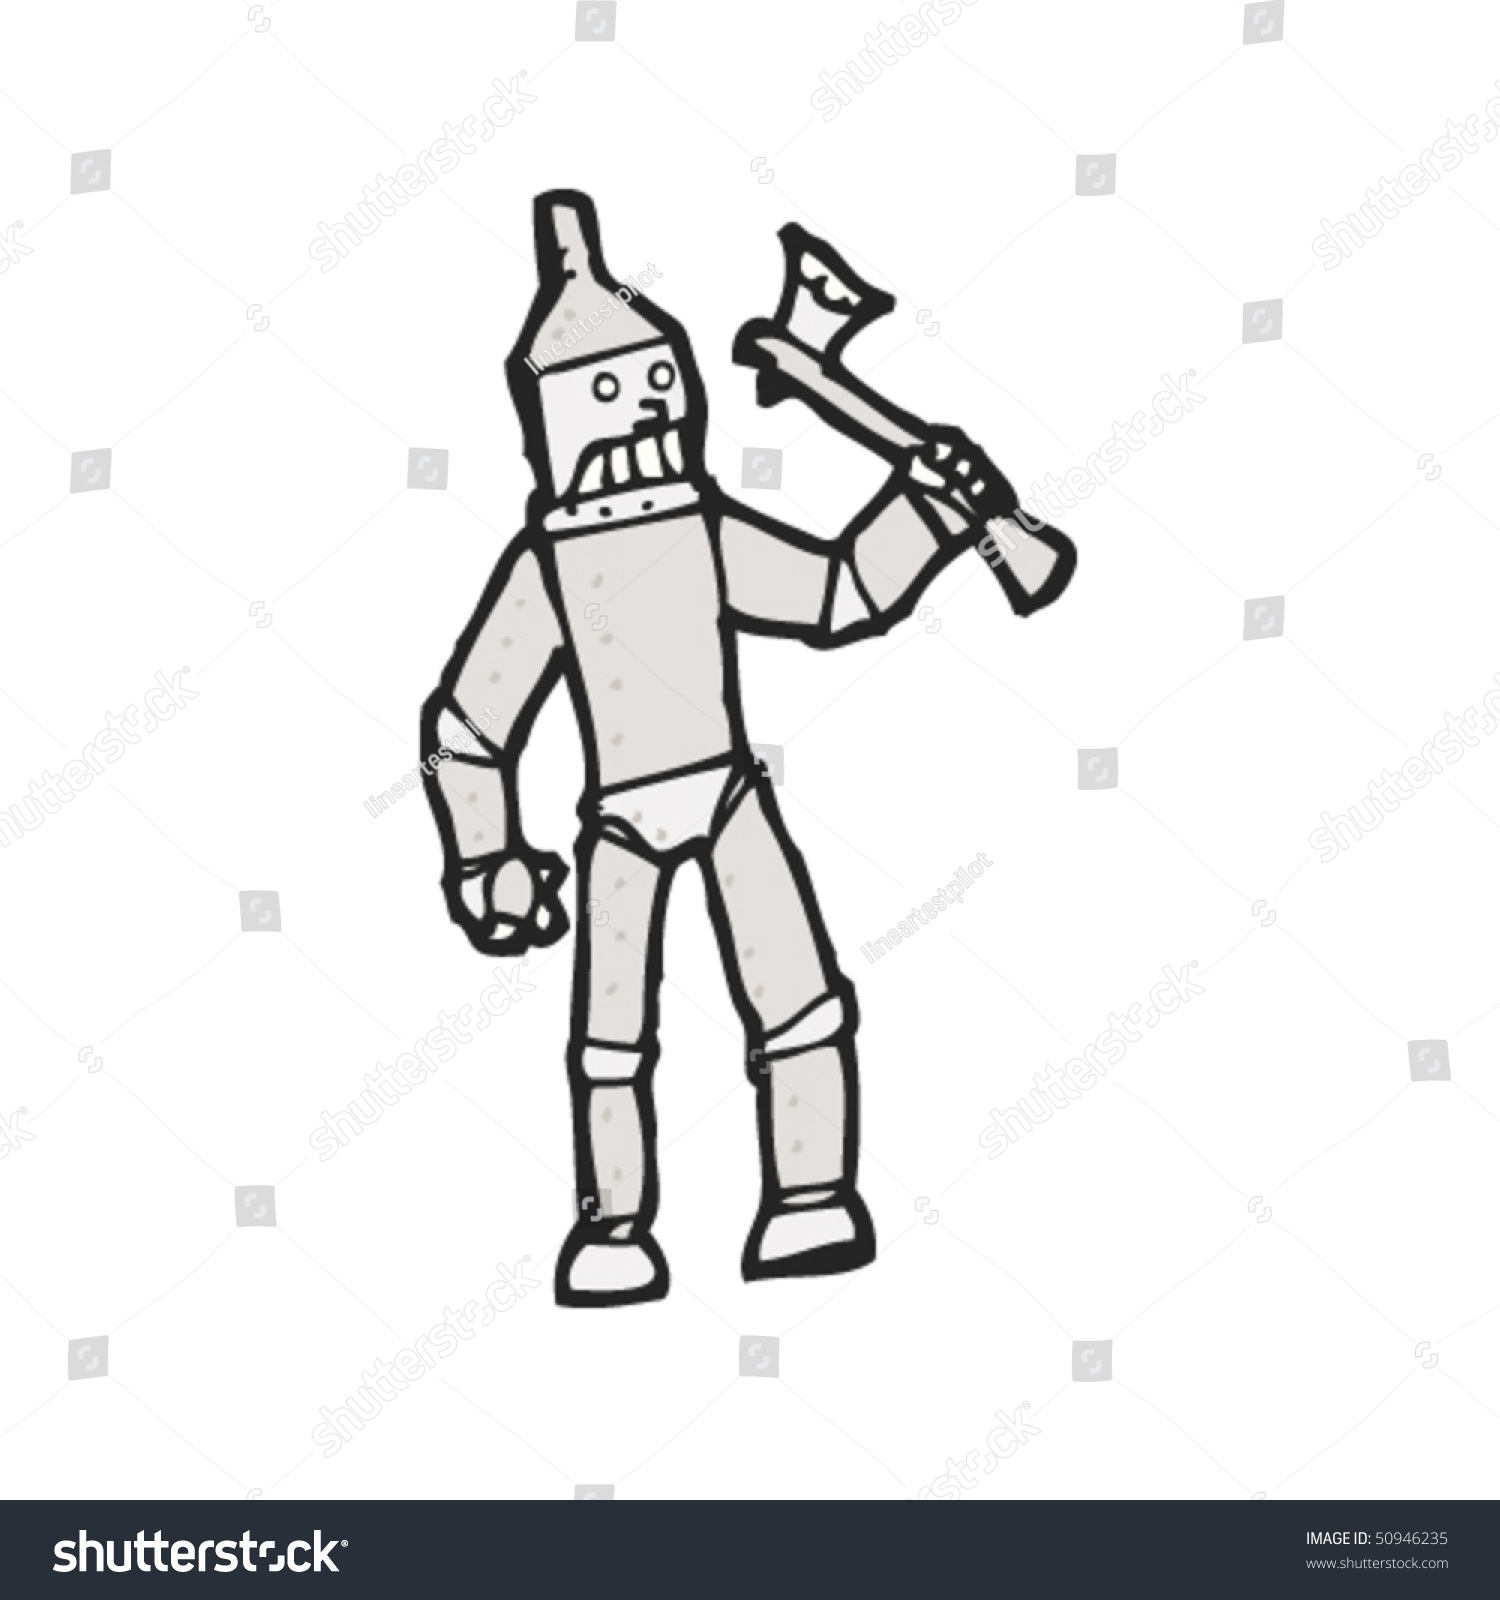 Drawing of a tin man